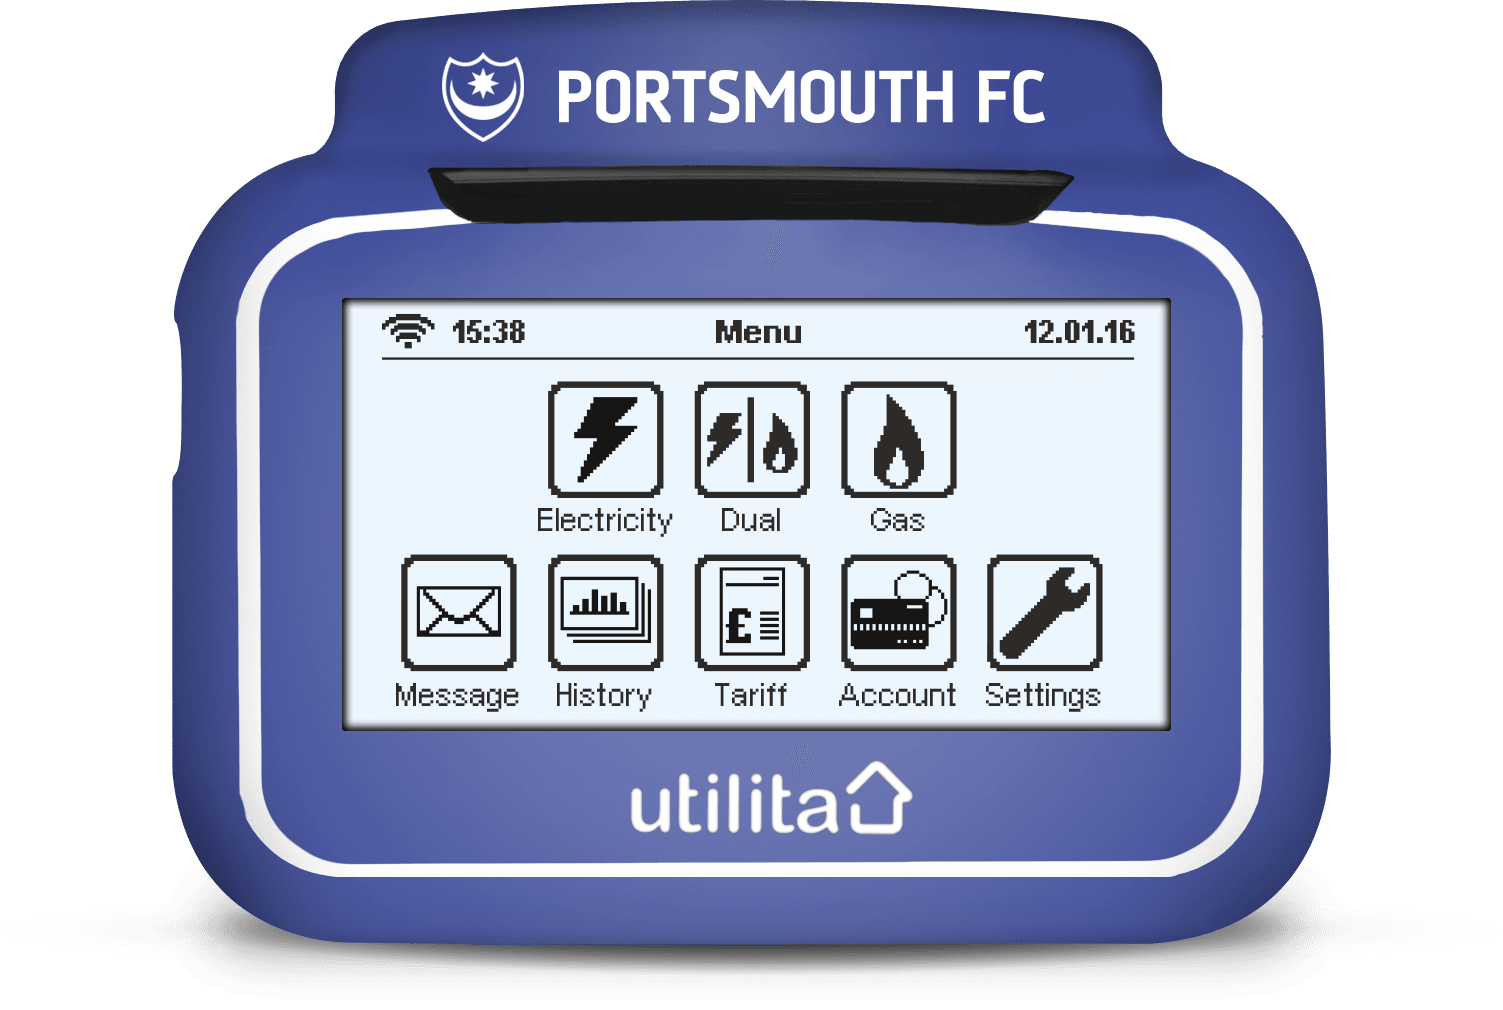 portsmouth In-Home Display Cover